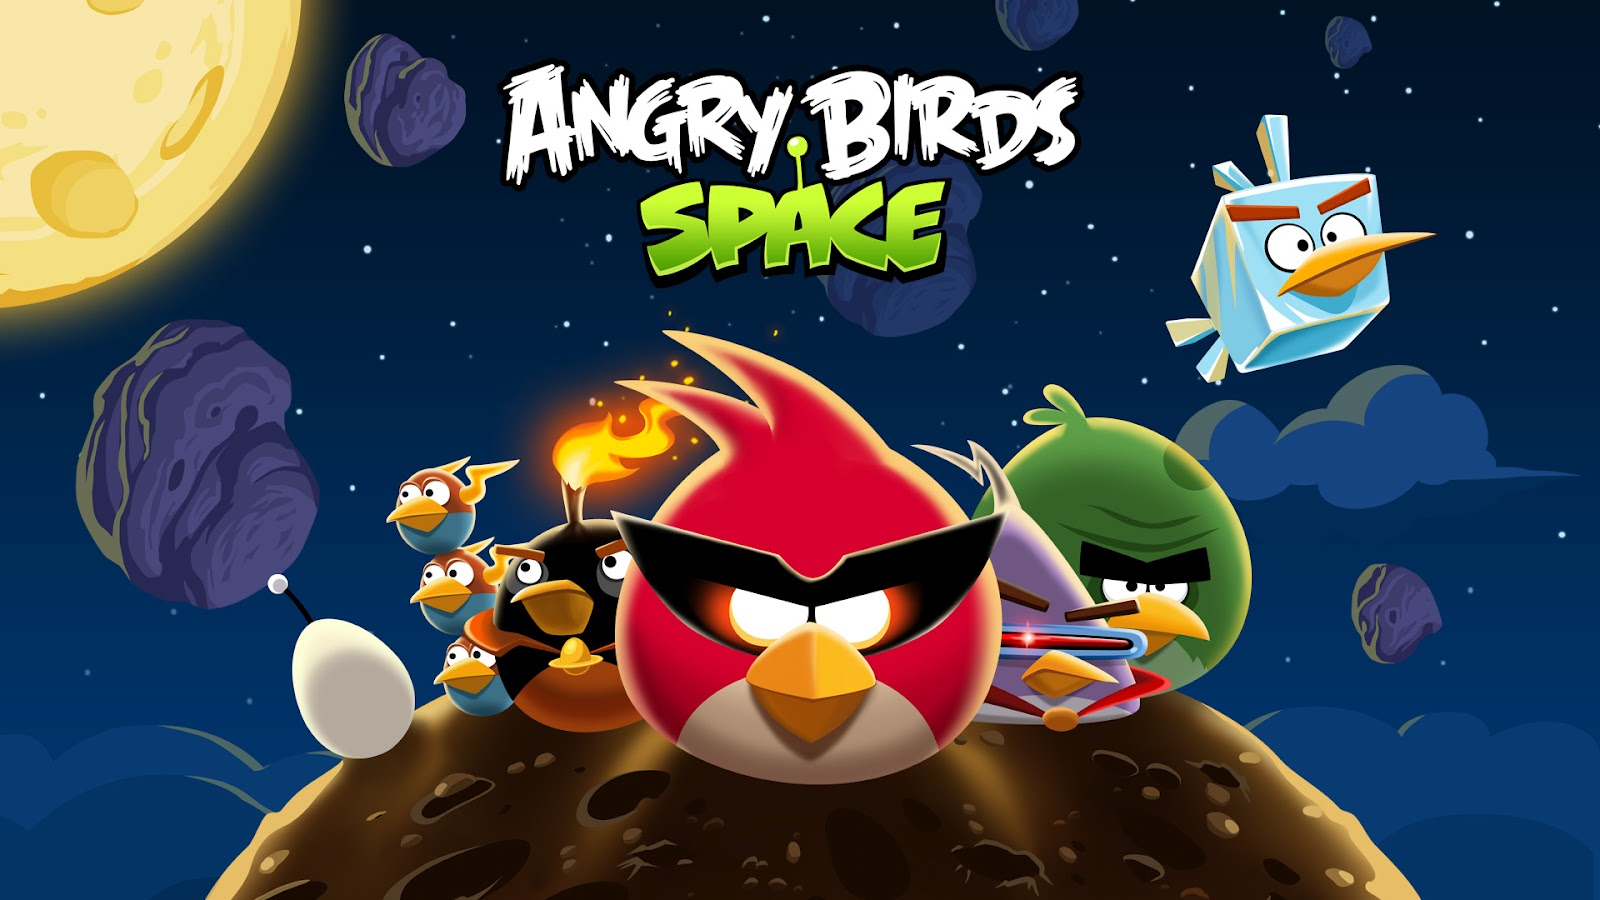 Angry birds game software